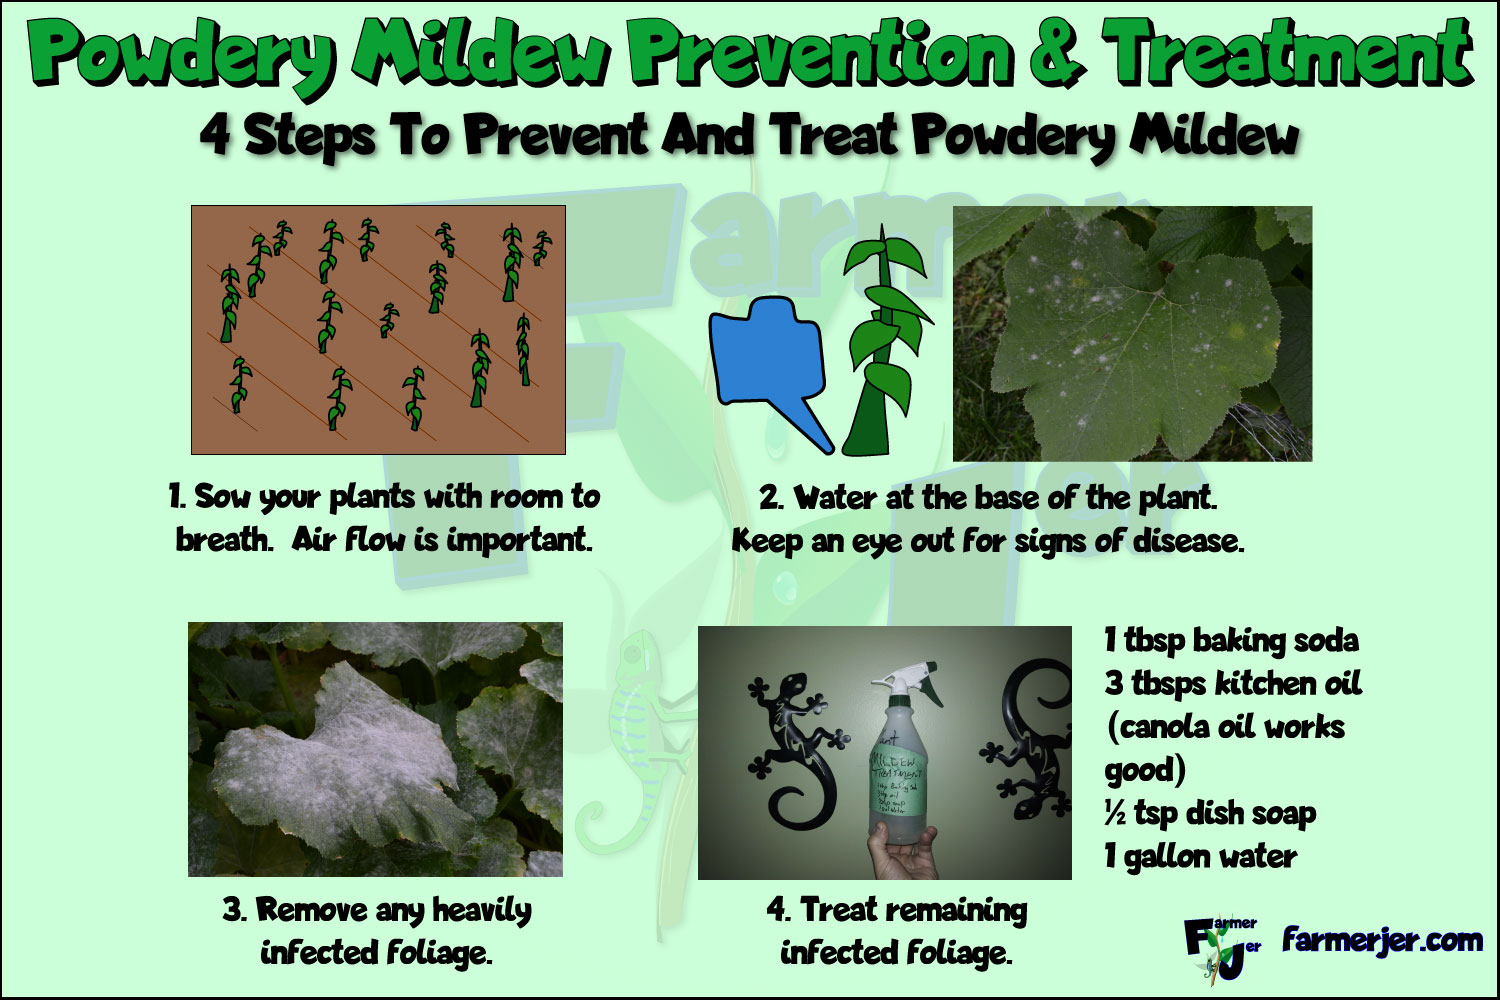 4 Steps To Prevent And Treat Powdery Mildew